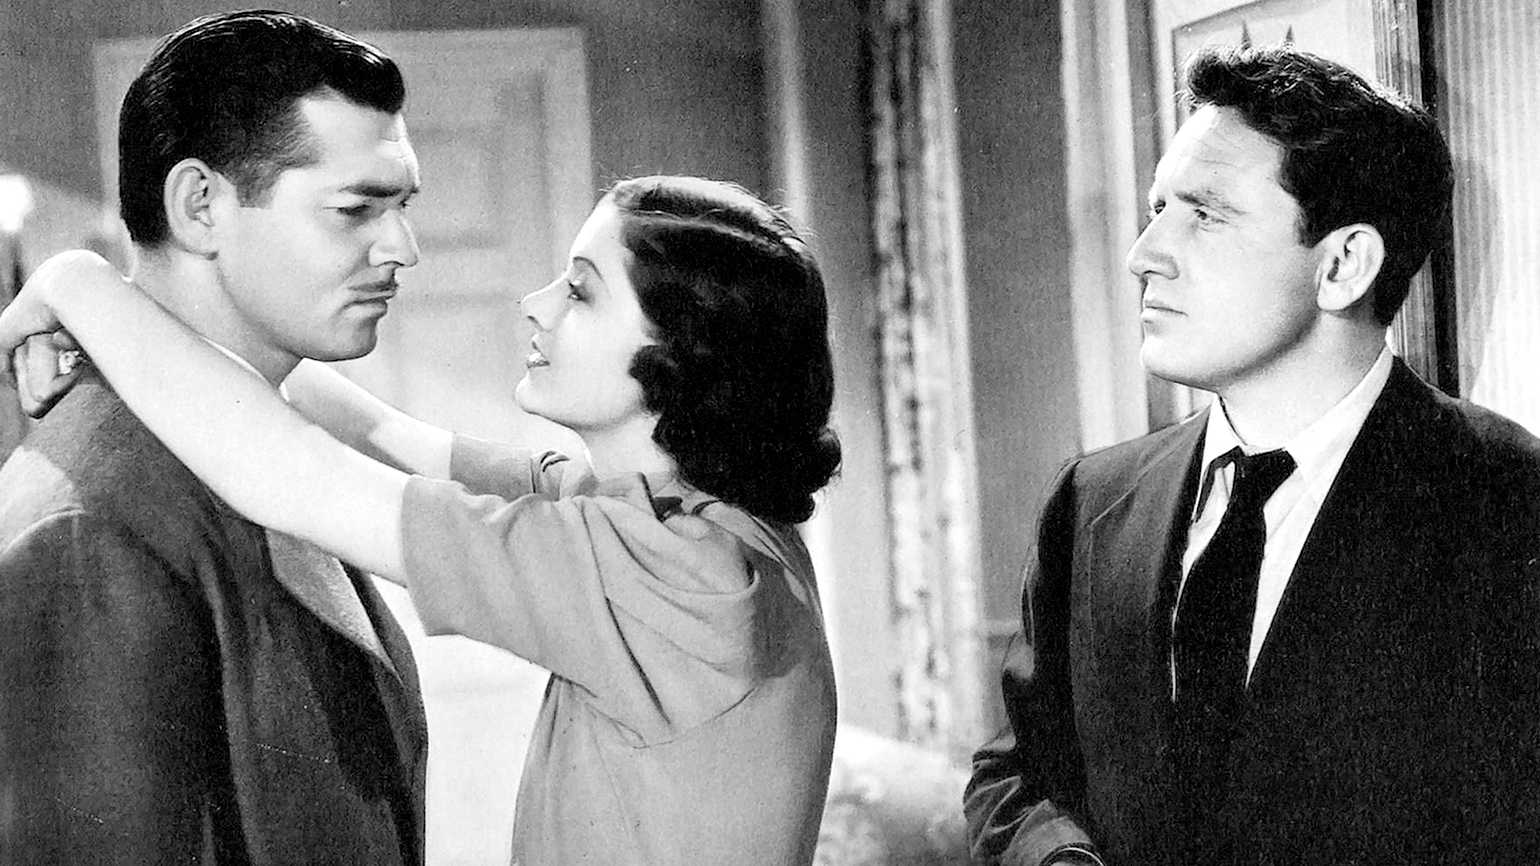 Clark Gable, Myrna Loy and Spencer Tracy in 'Test Pilot'